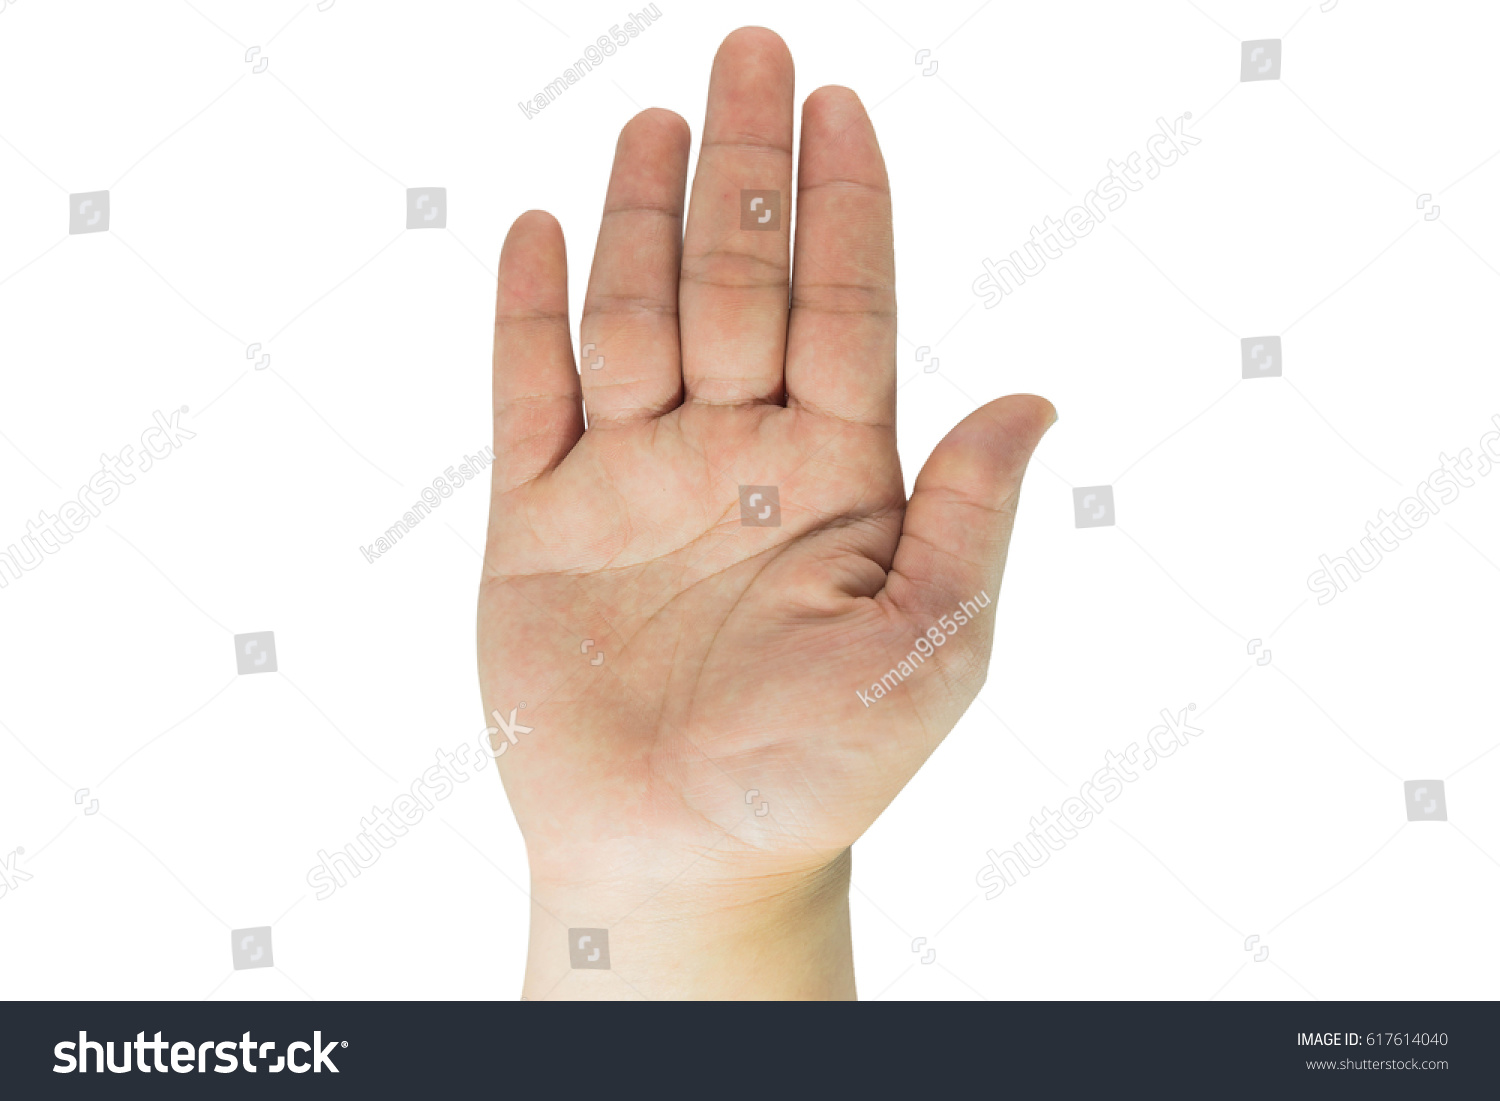 Hands Vital Organs Our Human Body Stock Photo (Royalty Free ...